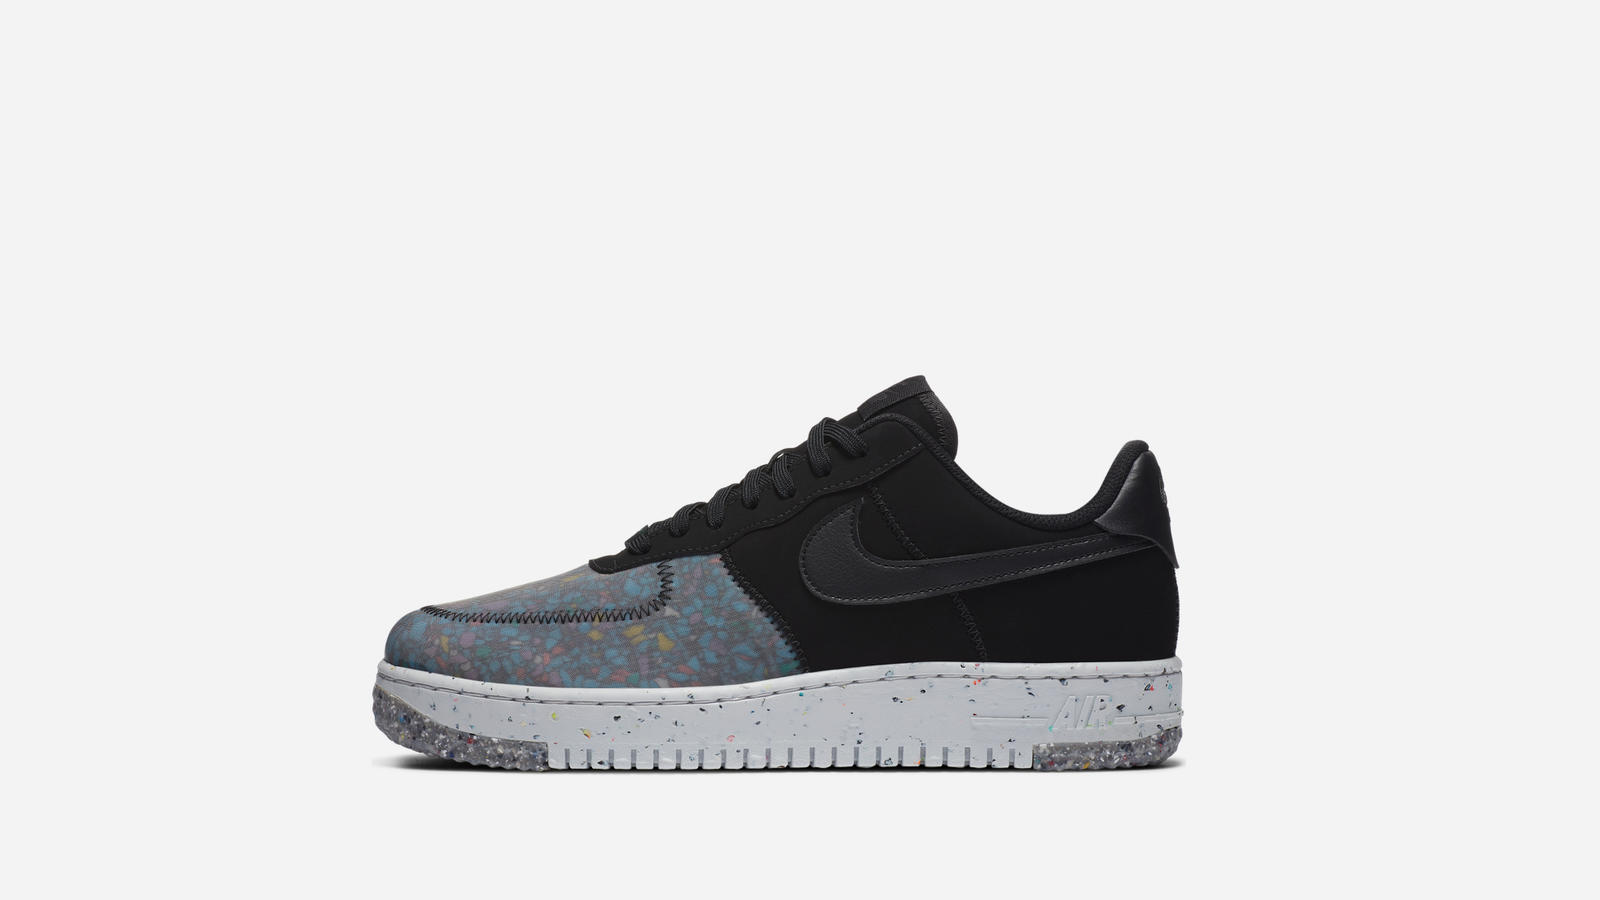 Nike Air Force 1 Crater Official Images and Release Date 5